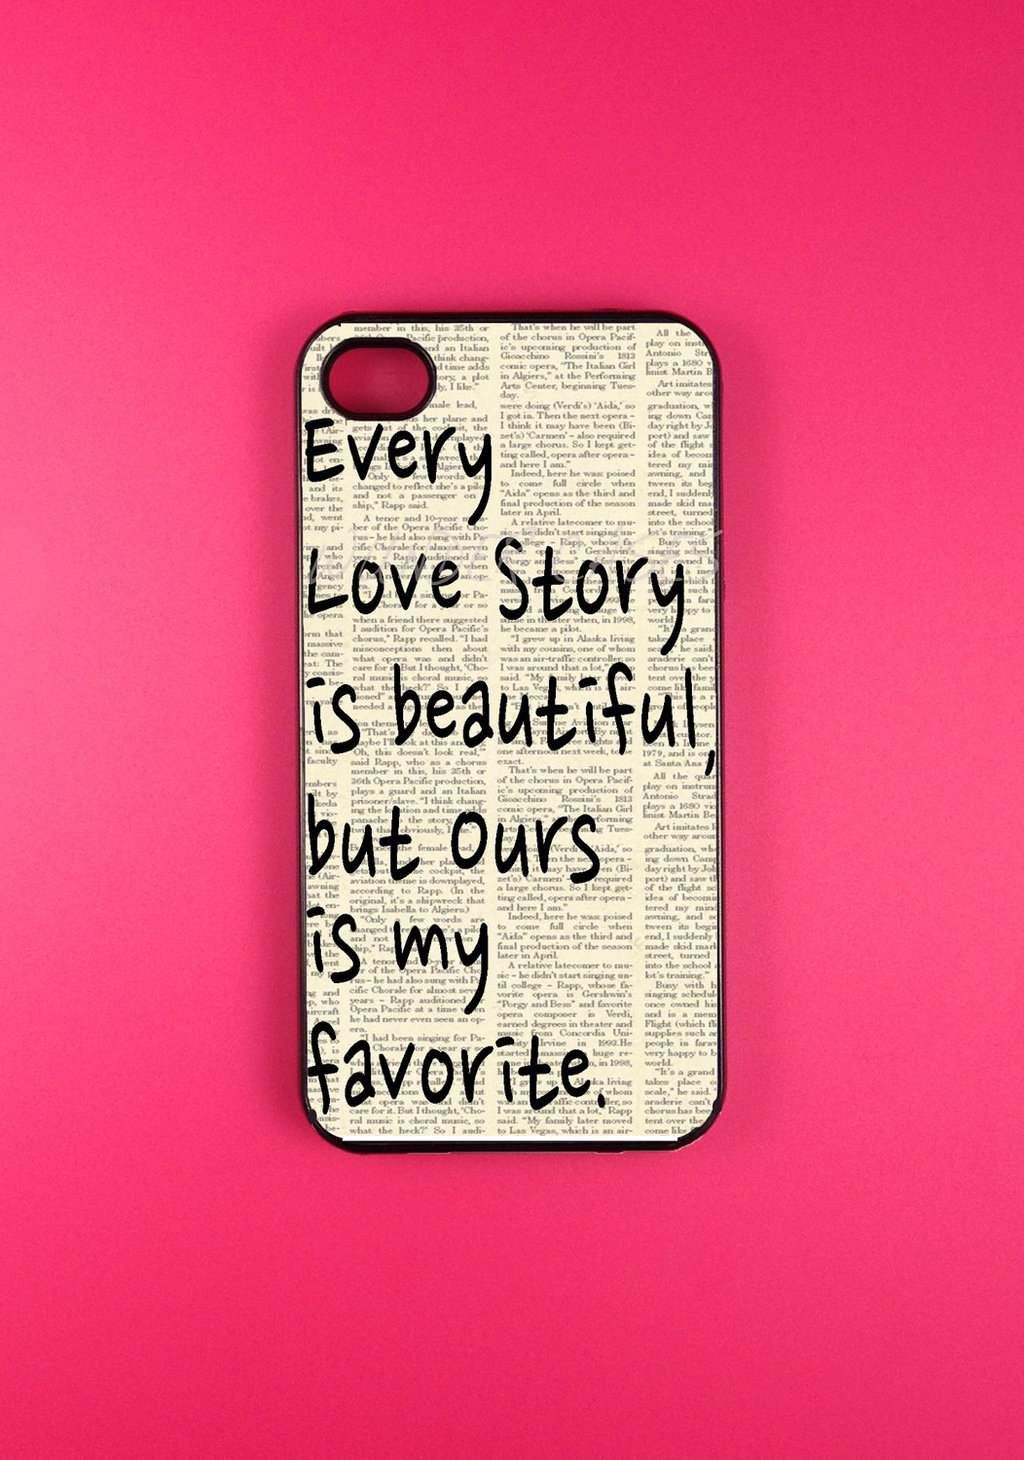 Favorite-iphone-cases-for-brides-modern-tech-weddings-love-story.full